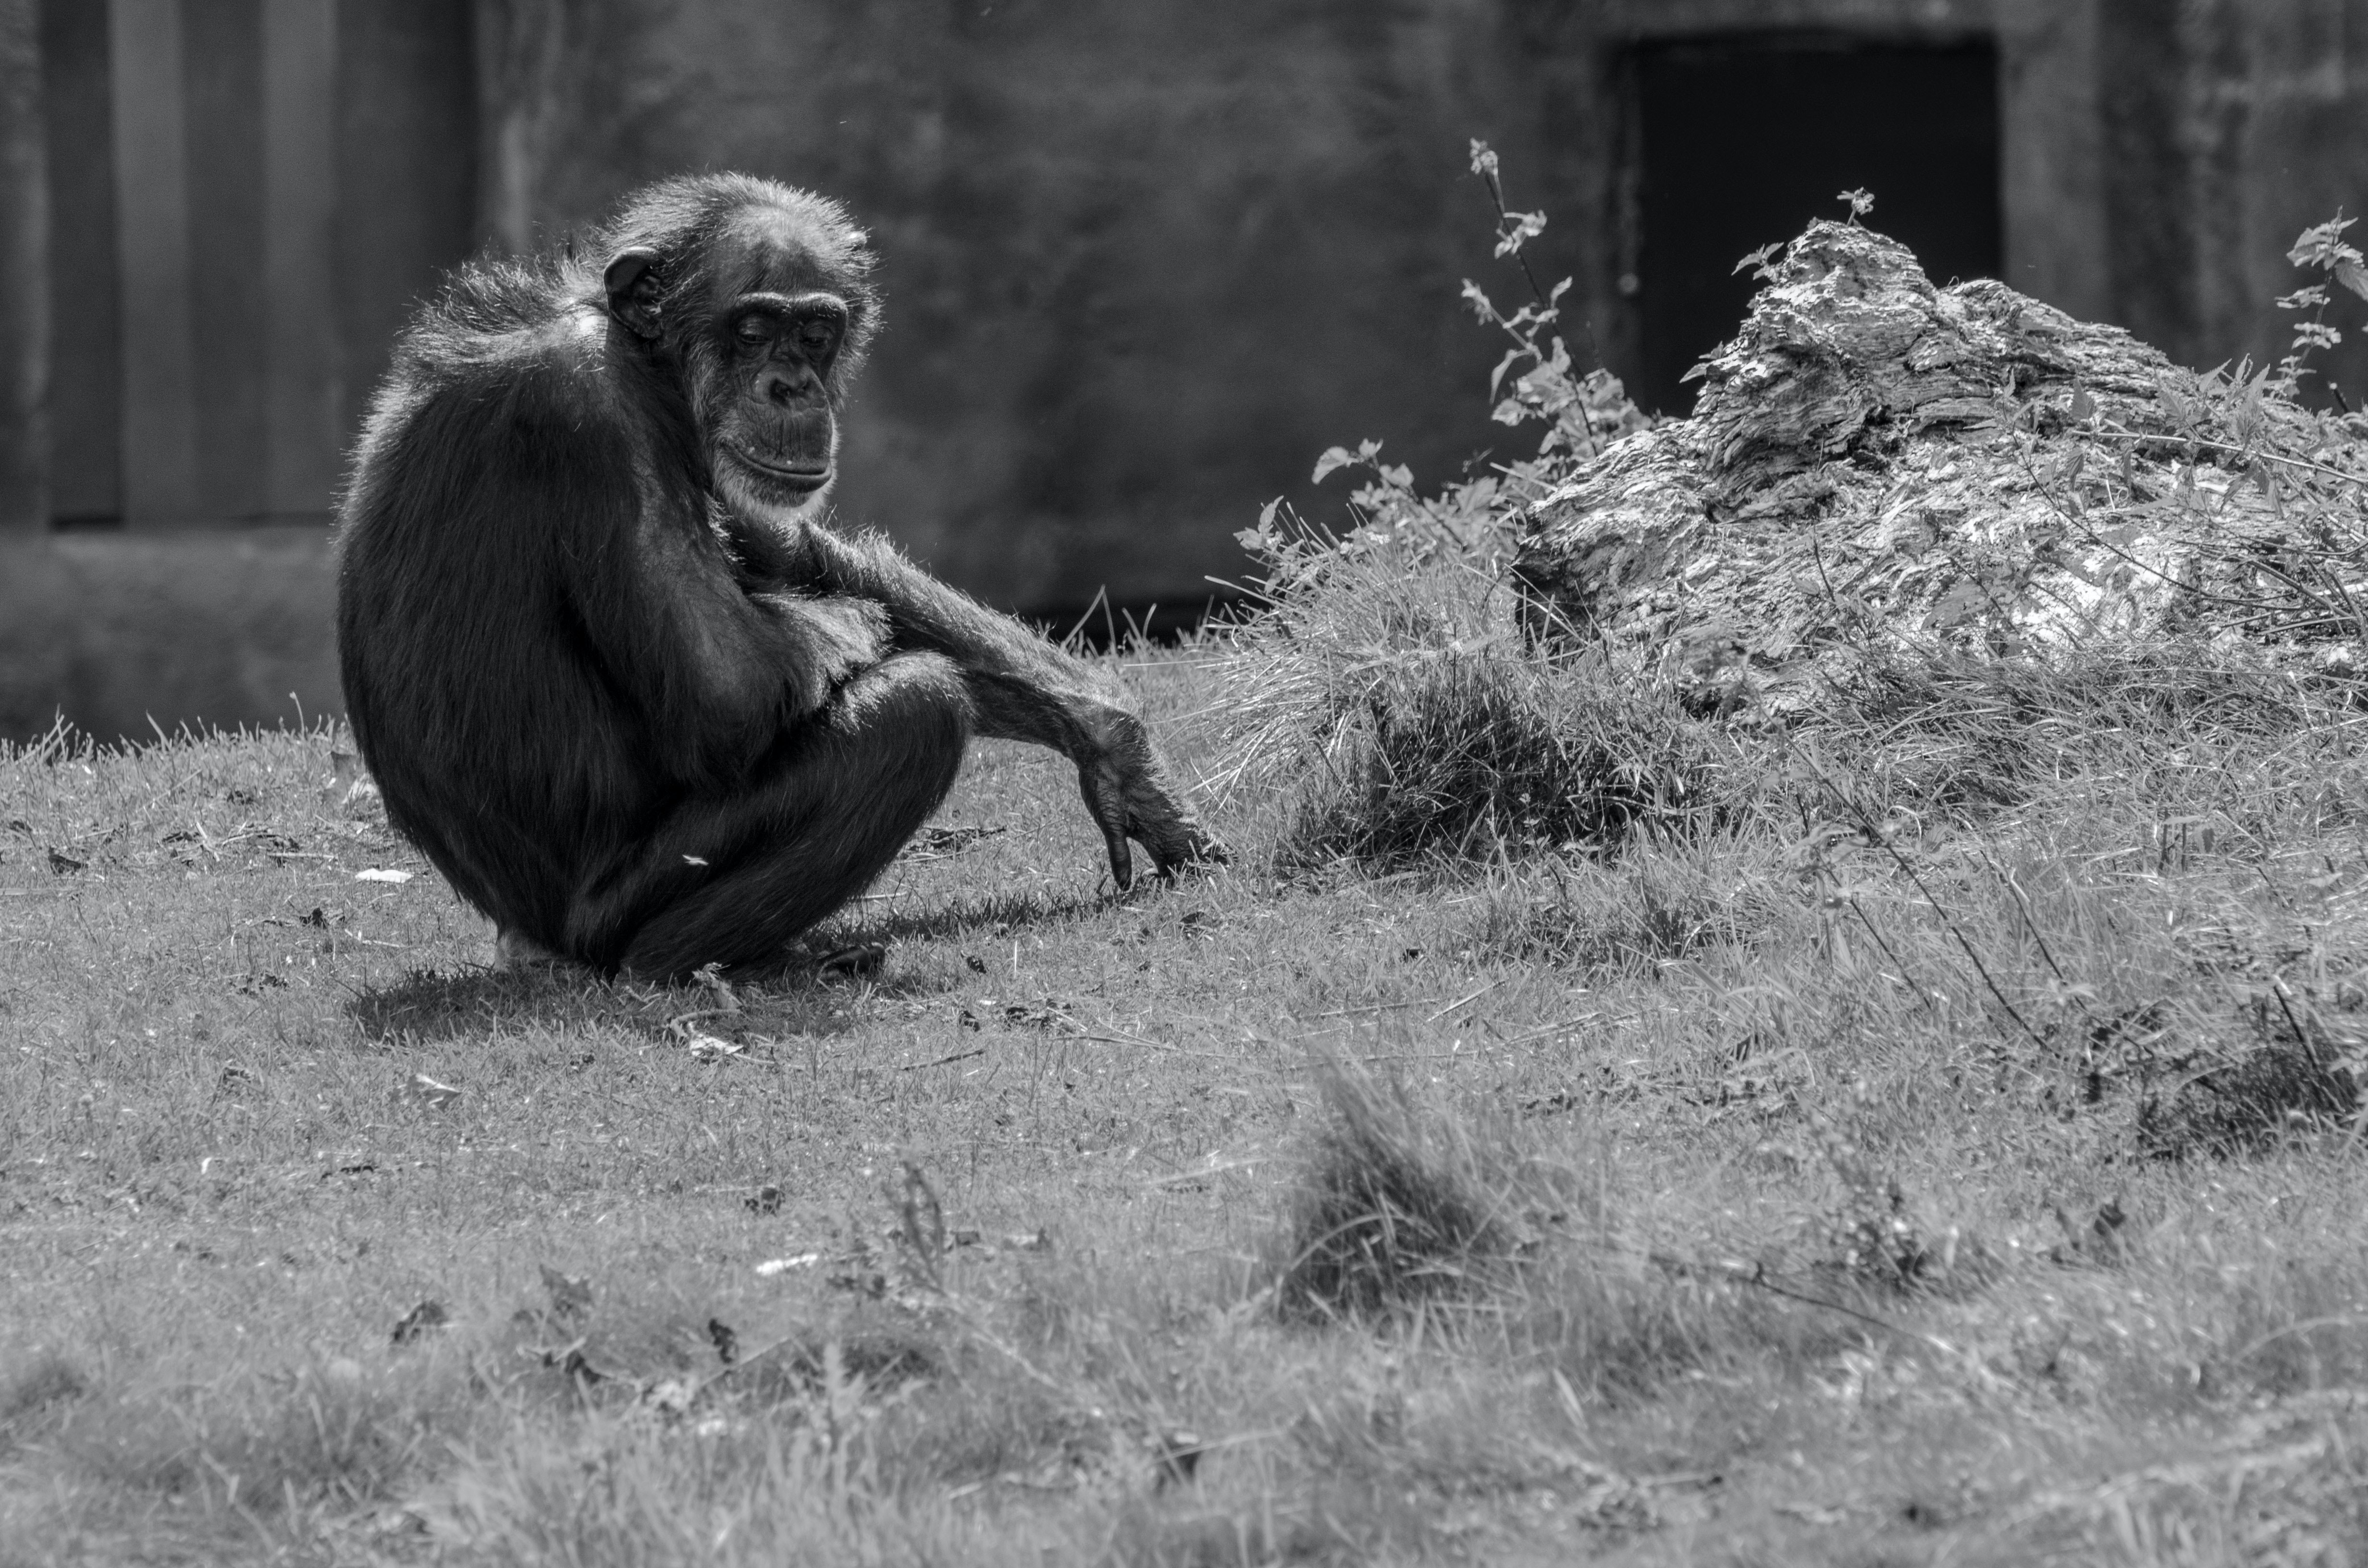 grayscale photography of monkey sitting on grass